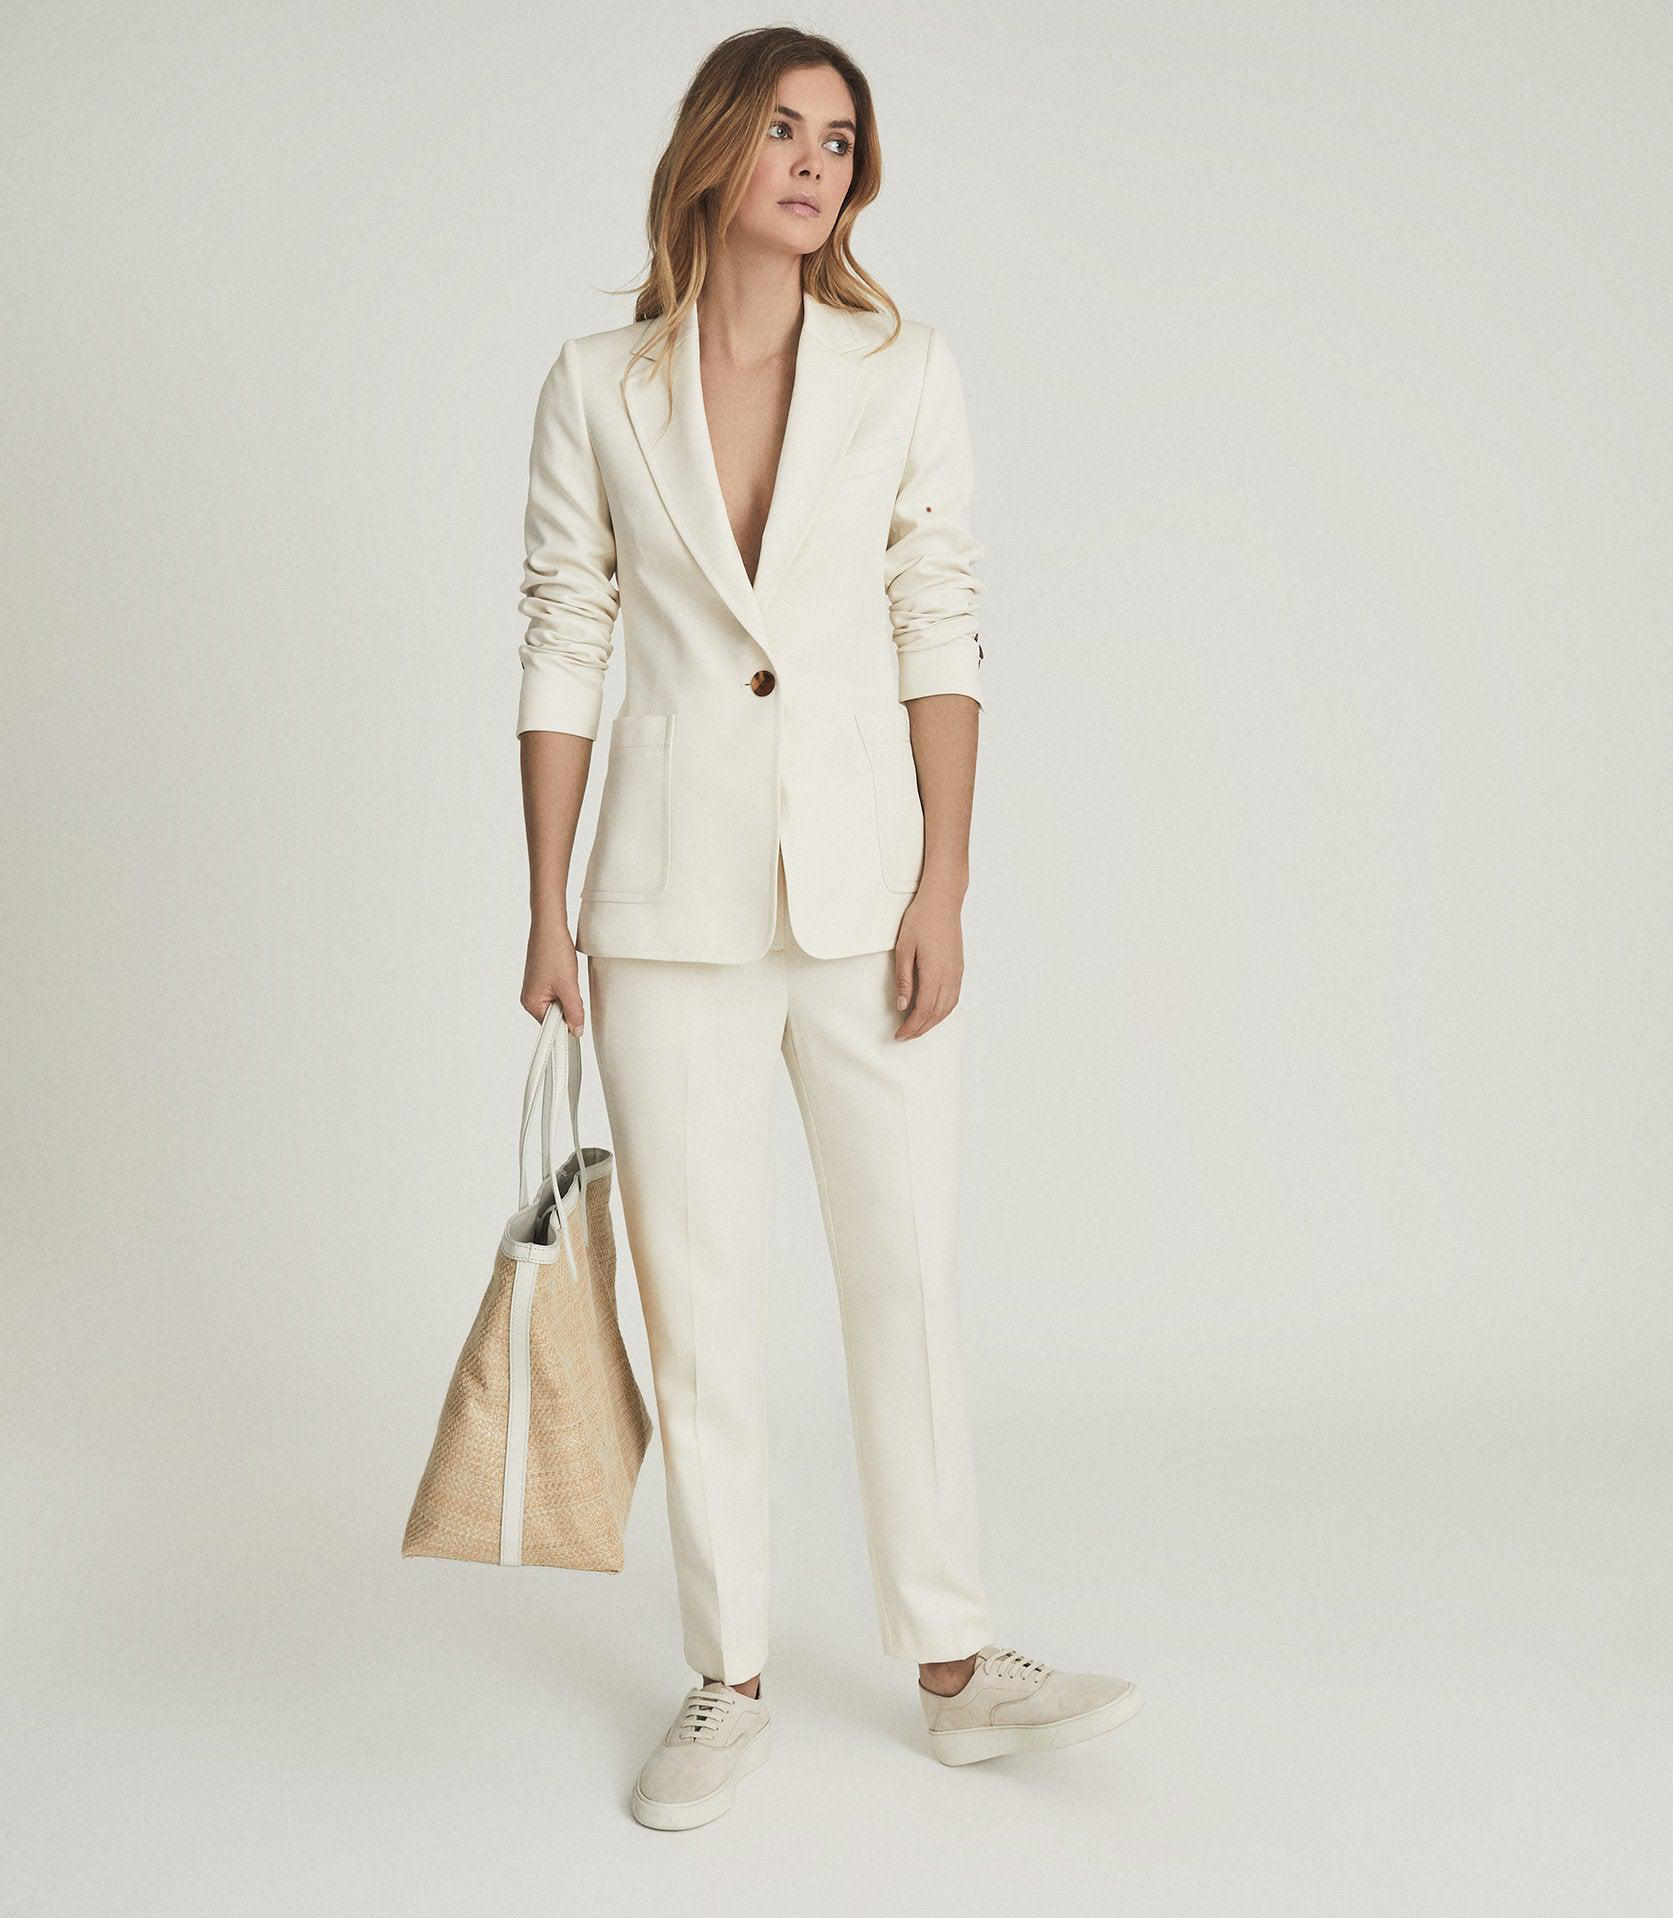 EMBER - TAILORED SINGLE BREASTED BLAZER